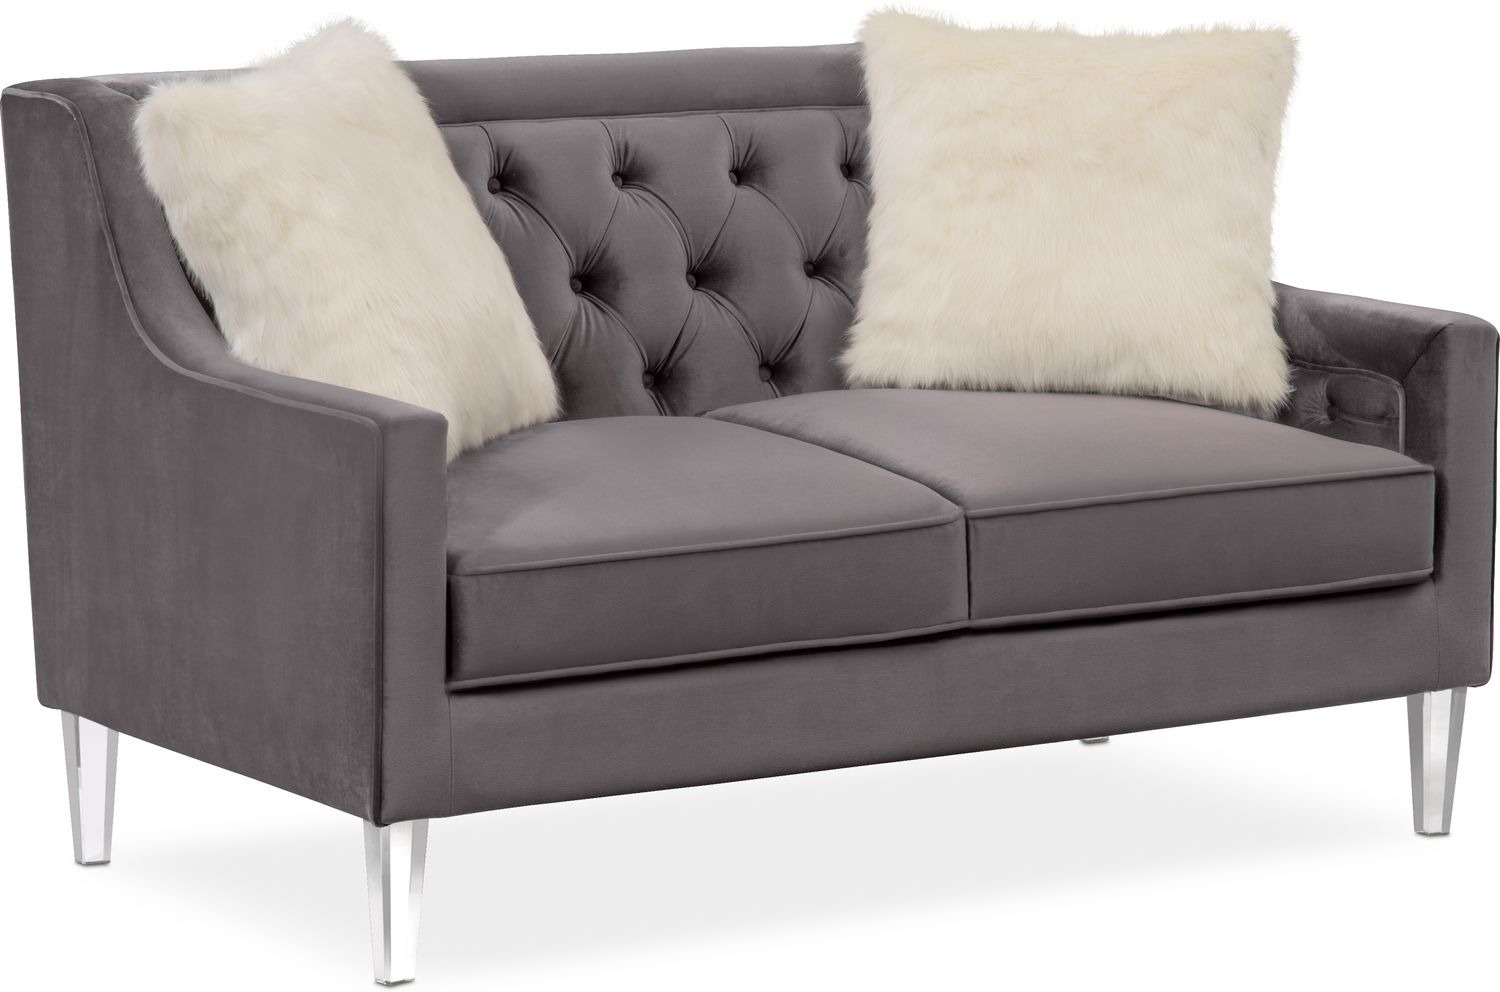 Chloe Sofa, Loveseat and Chair Set | Value City Furniture and Mattresses